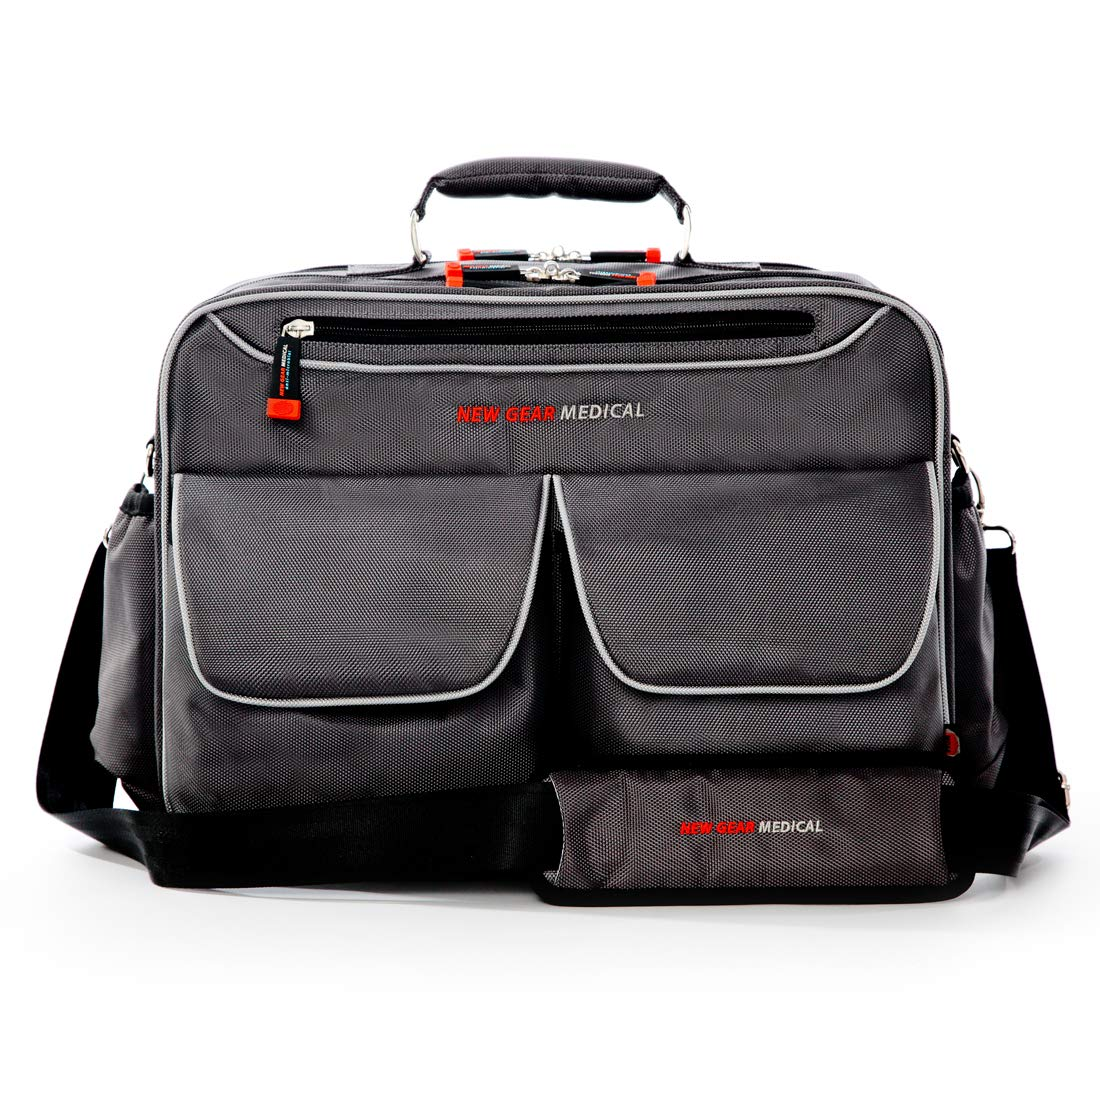 New Gear Medical Antimicrobial Messenger Bag, for Home Health, Nurse, Travel, CNA, and Medical Professionals (Grey)